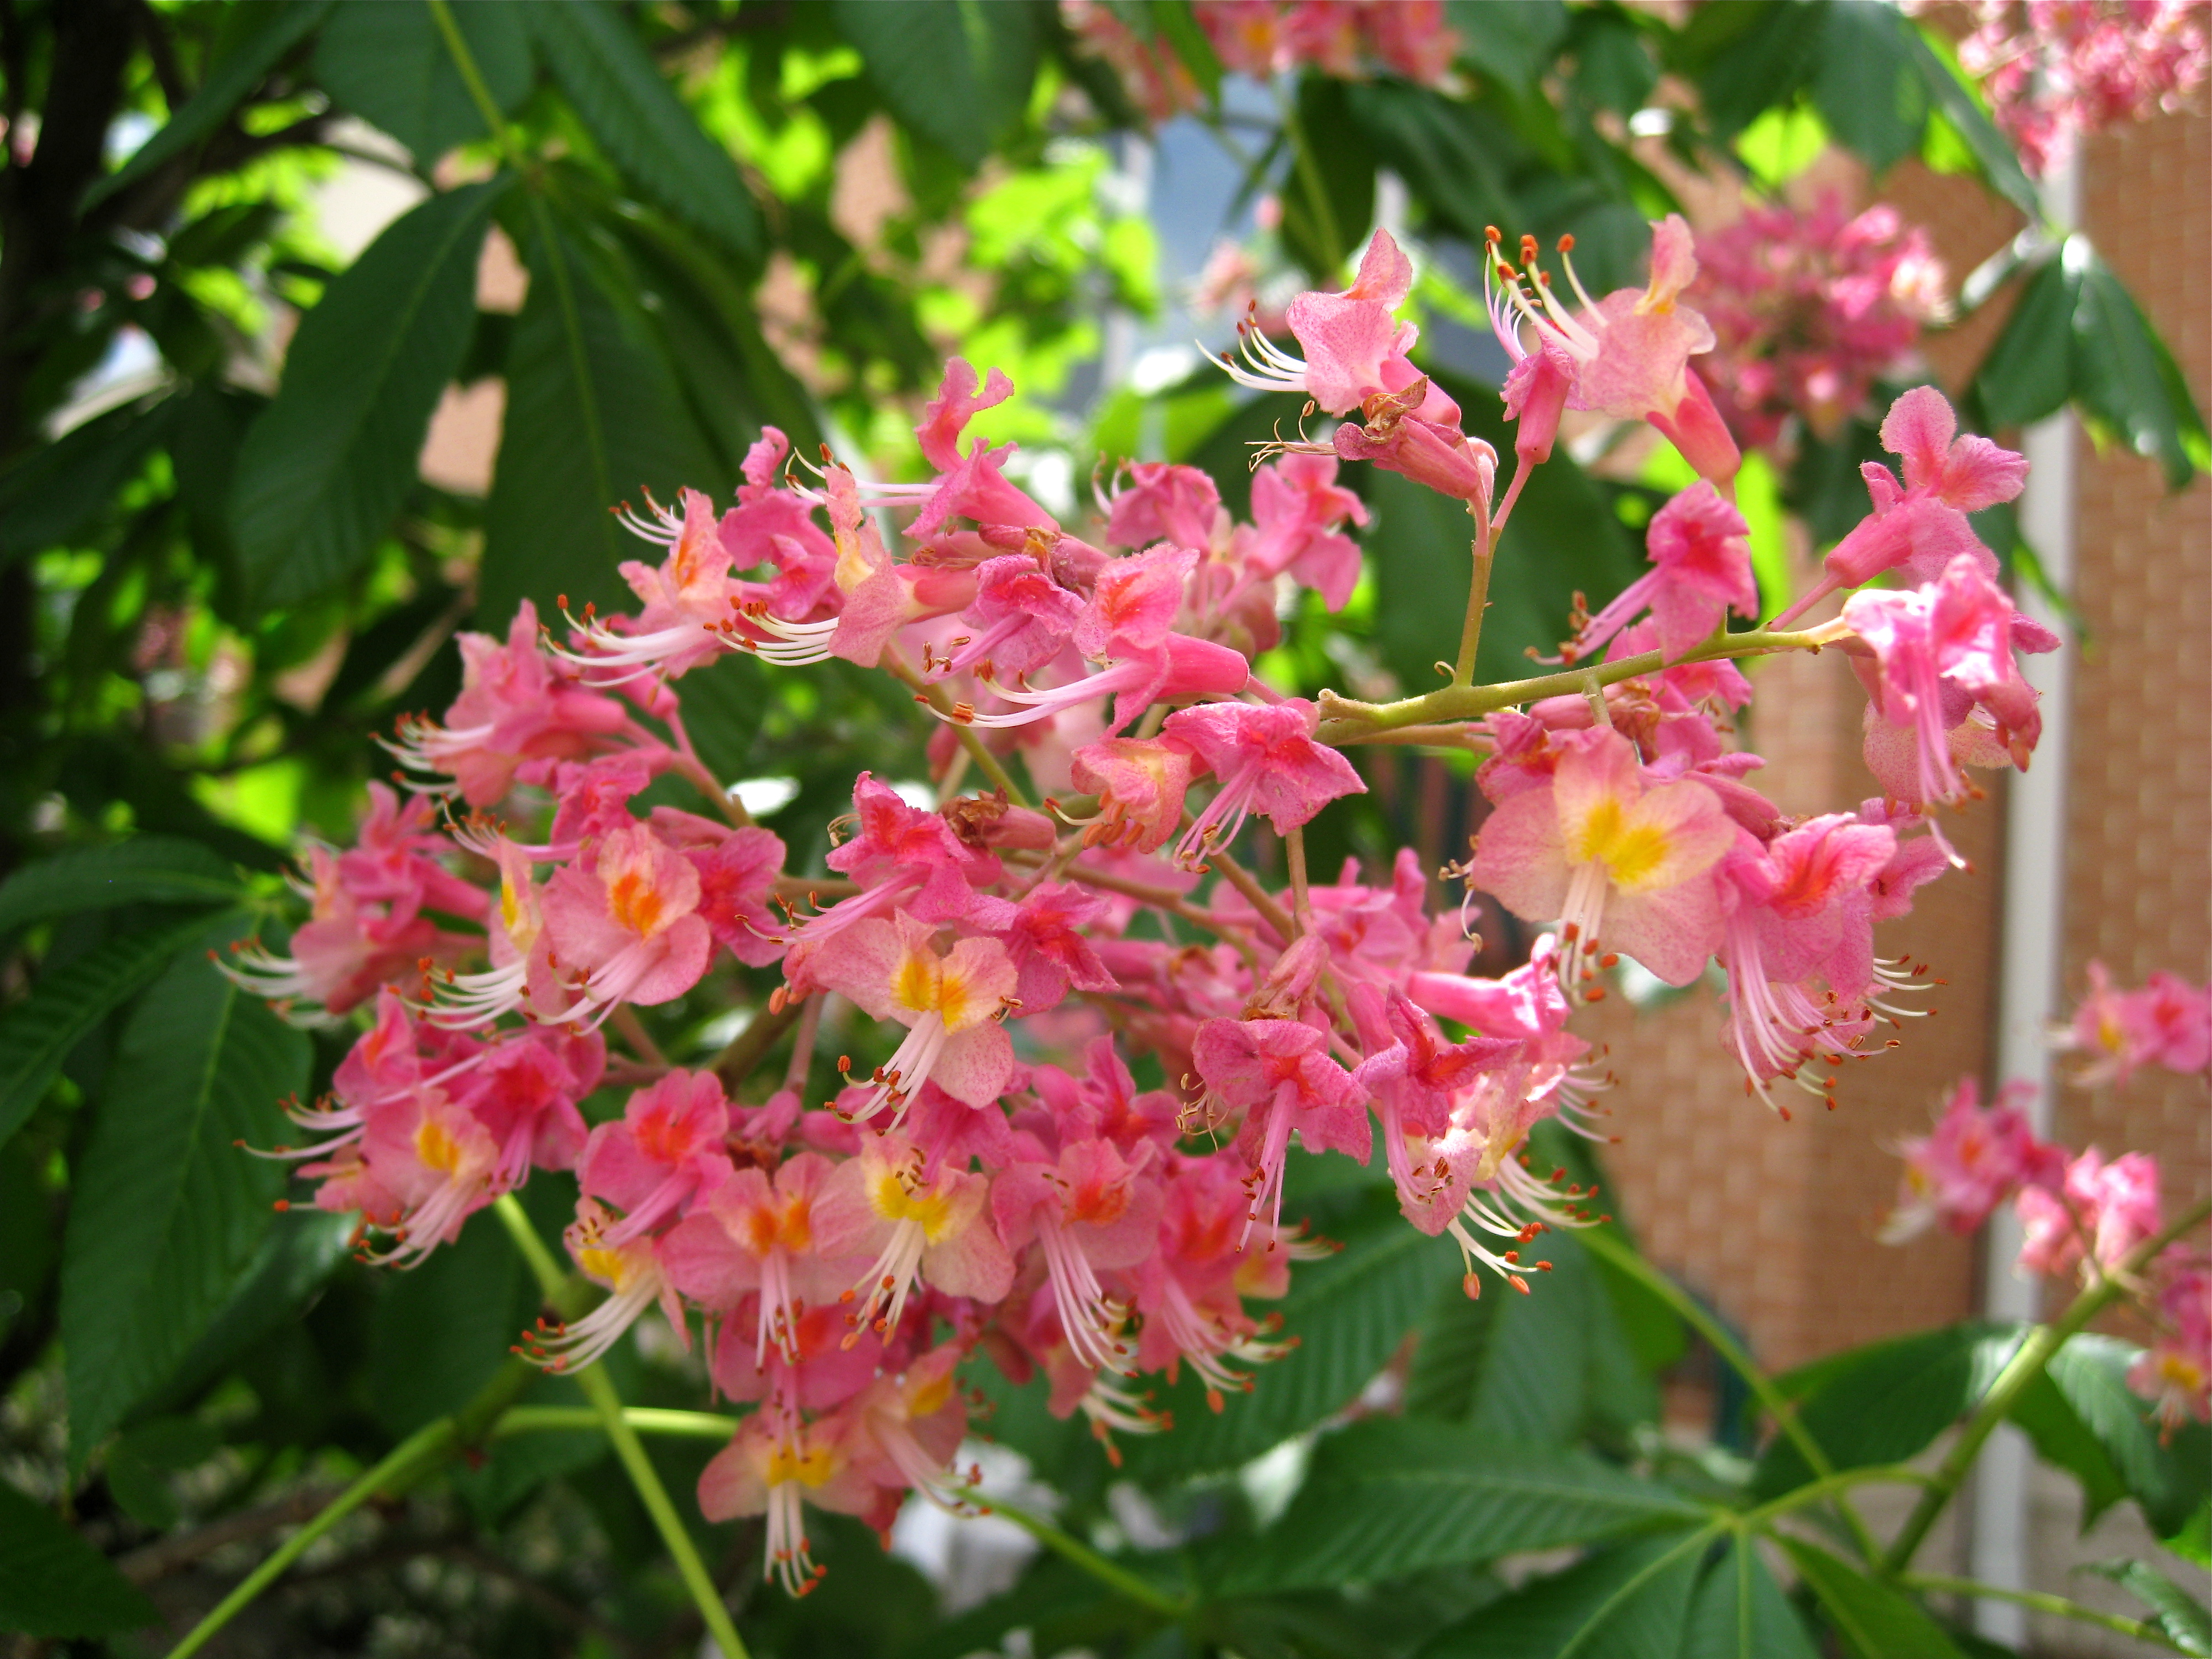 Chestnut flower wallpapers high quality download free mightylinksfo